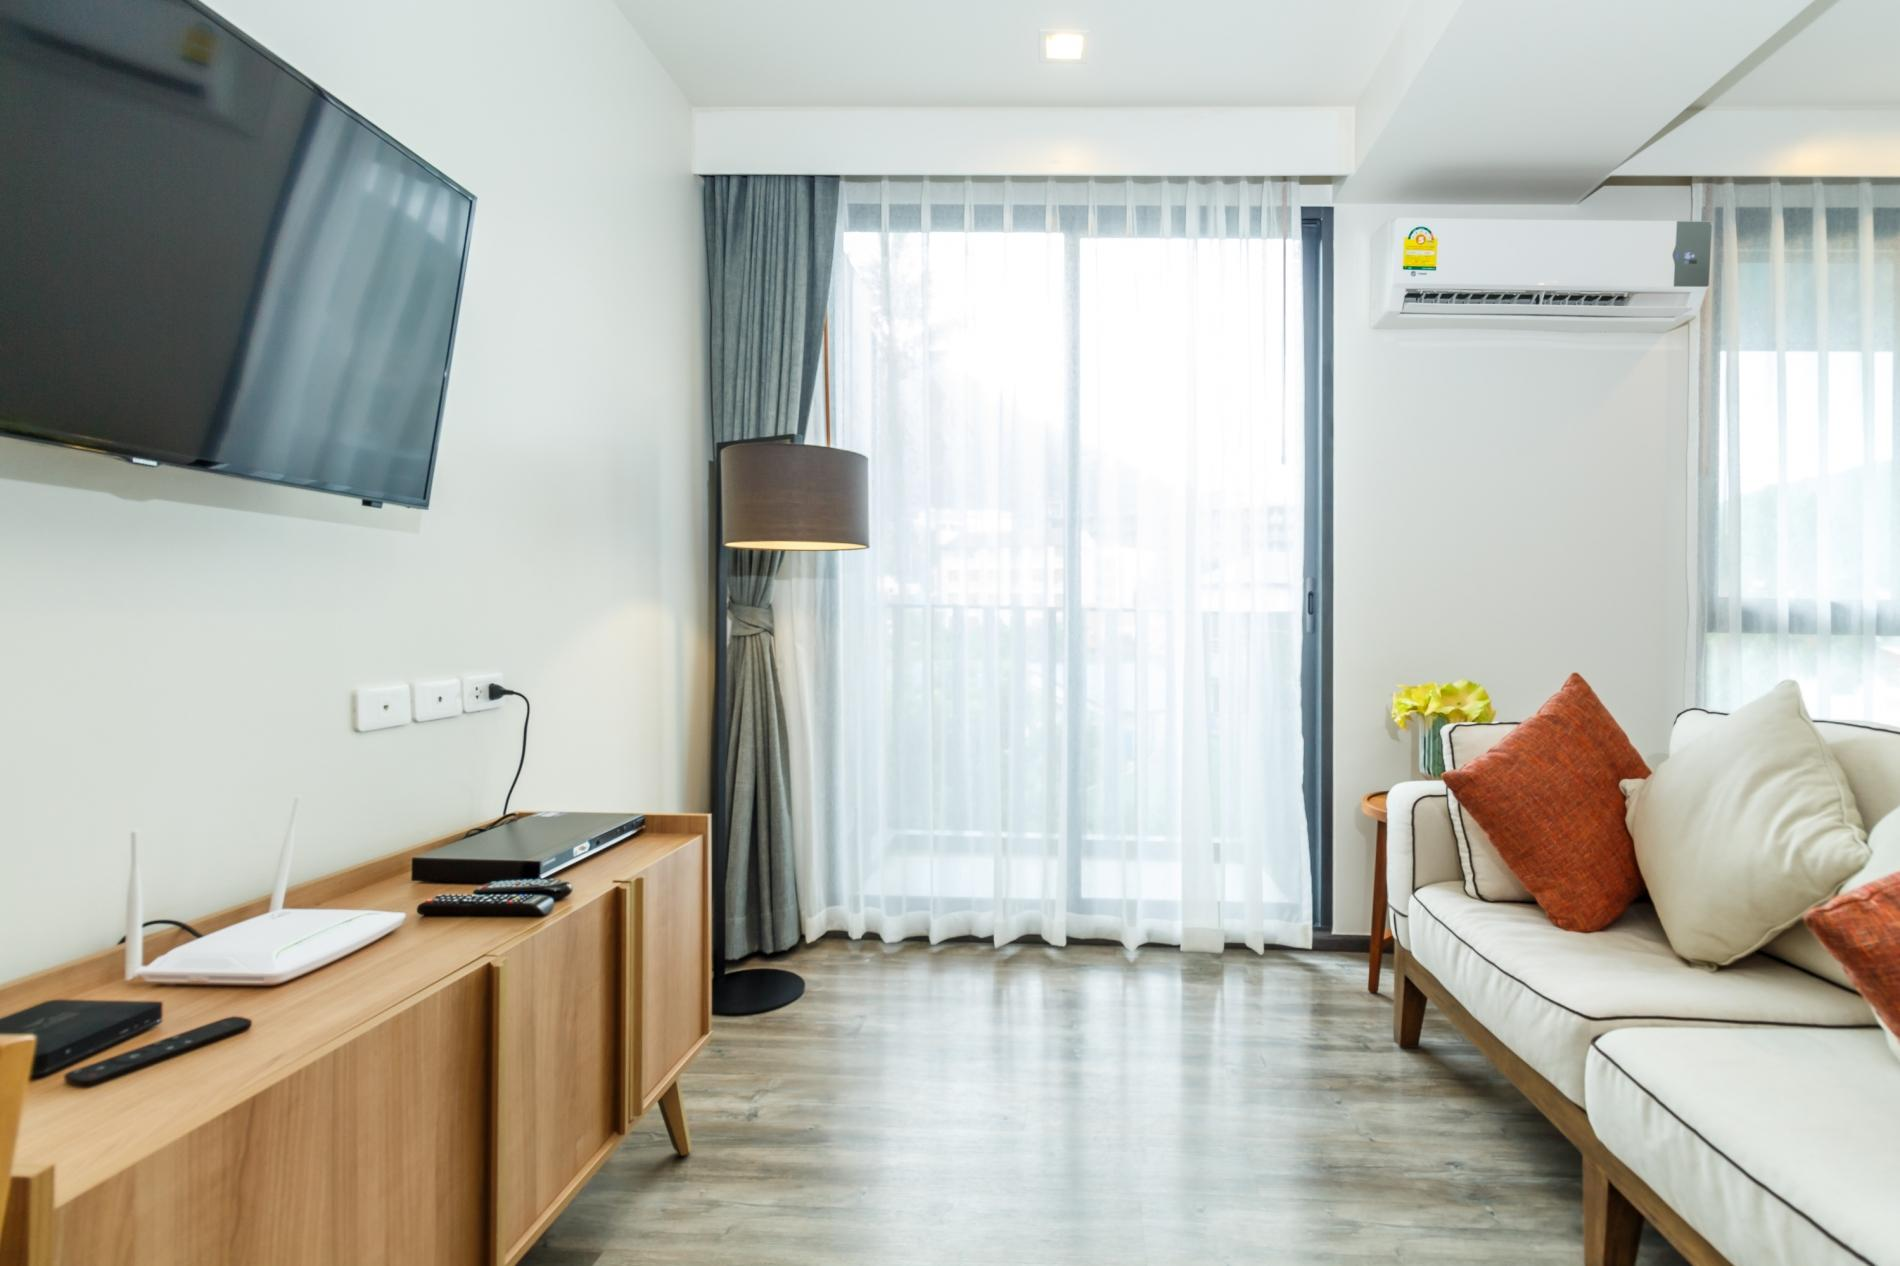 Apartment D9 - The Deck Patong  rooftop pool  gym and great location  photo 17051986